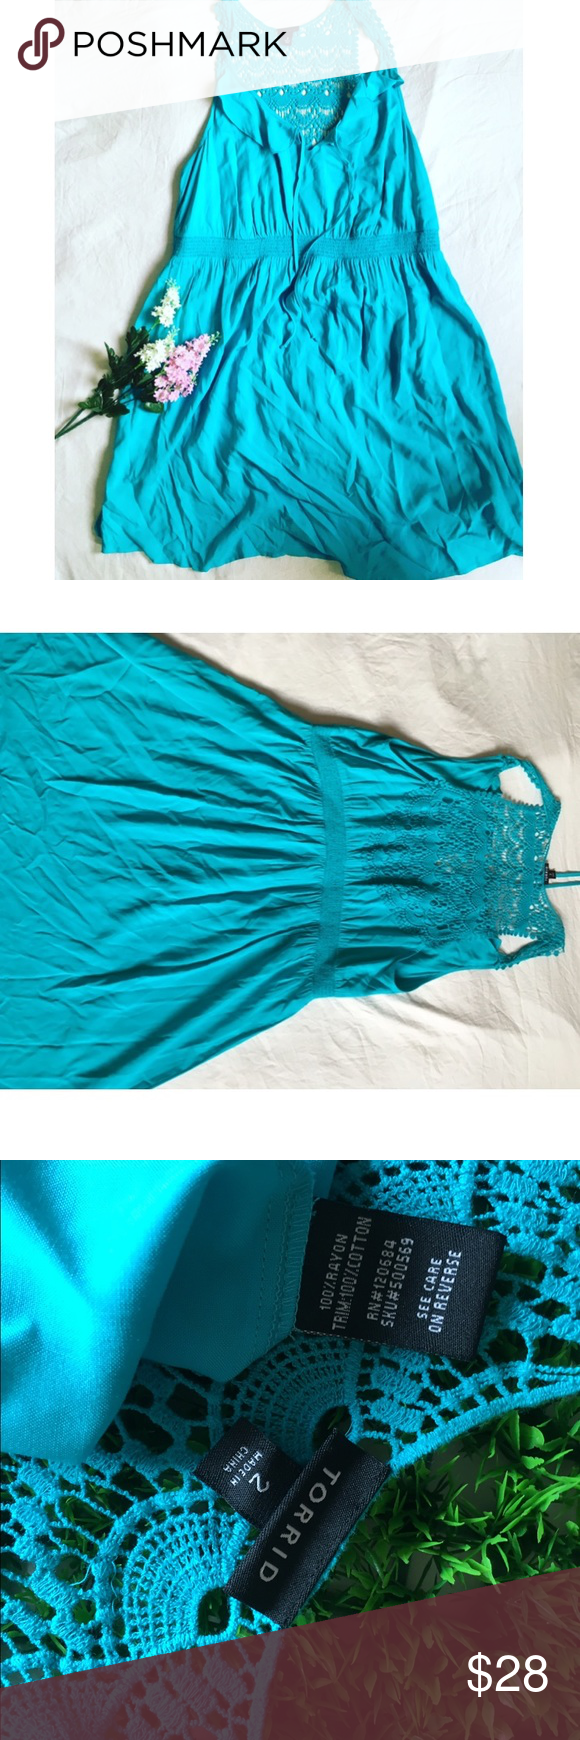 Torrid 2 bright blue dress | Bright blue dresses, Torrid and Blue ...